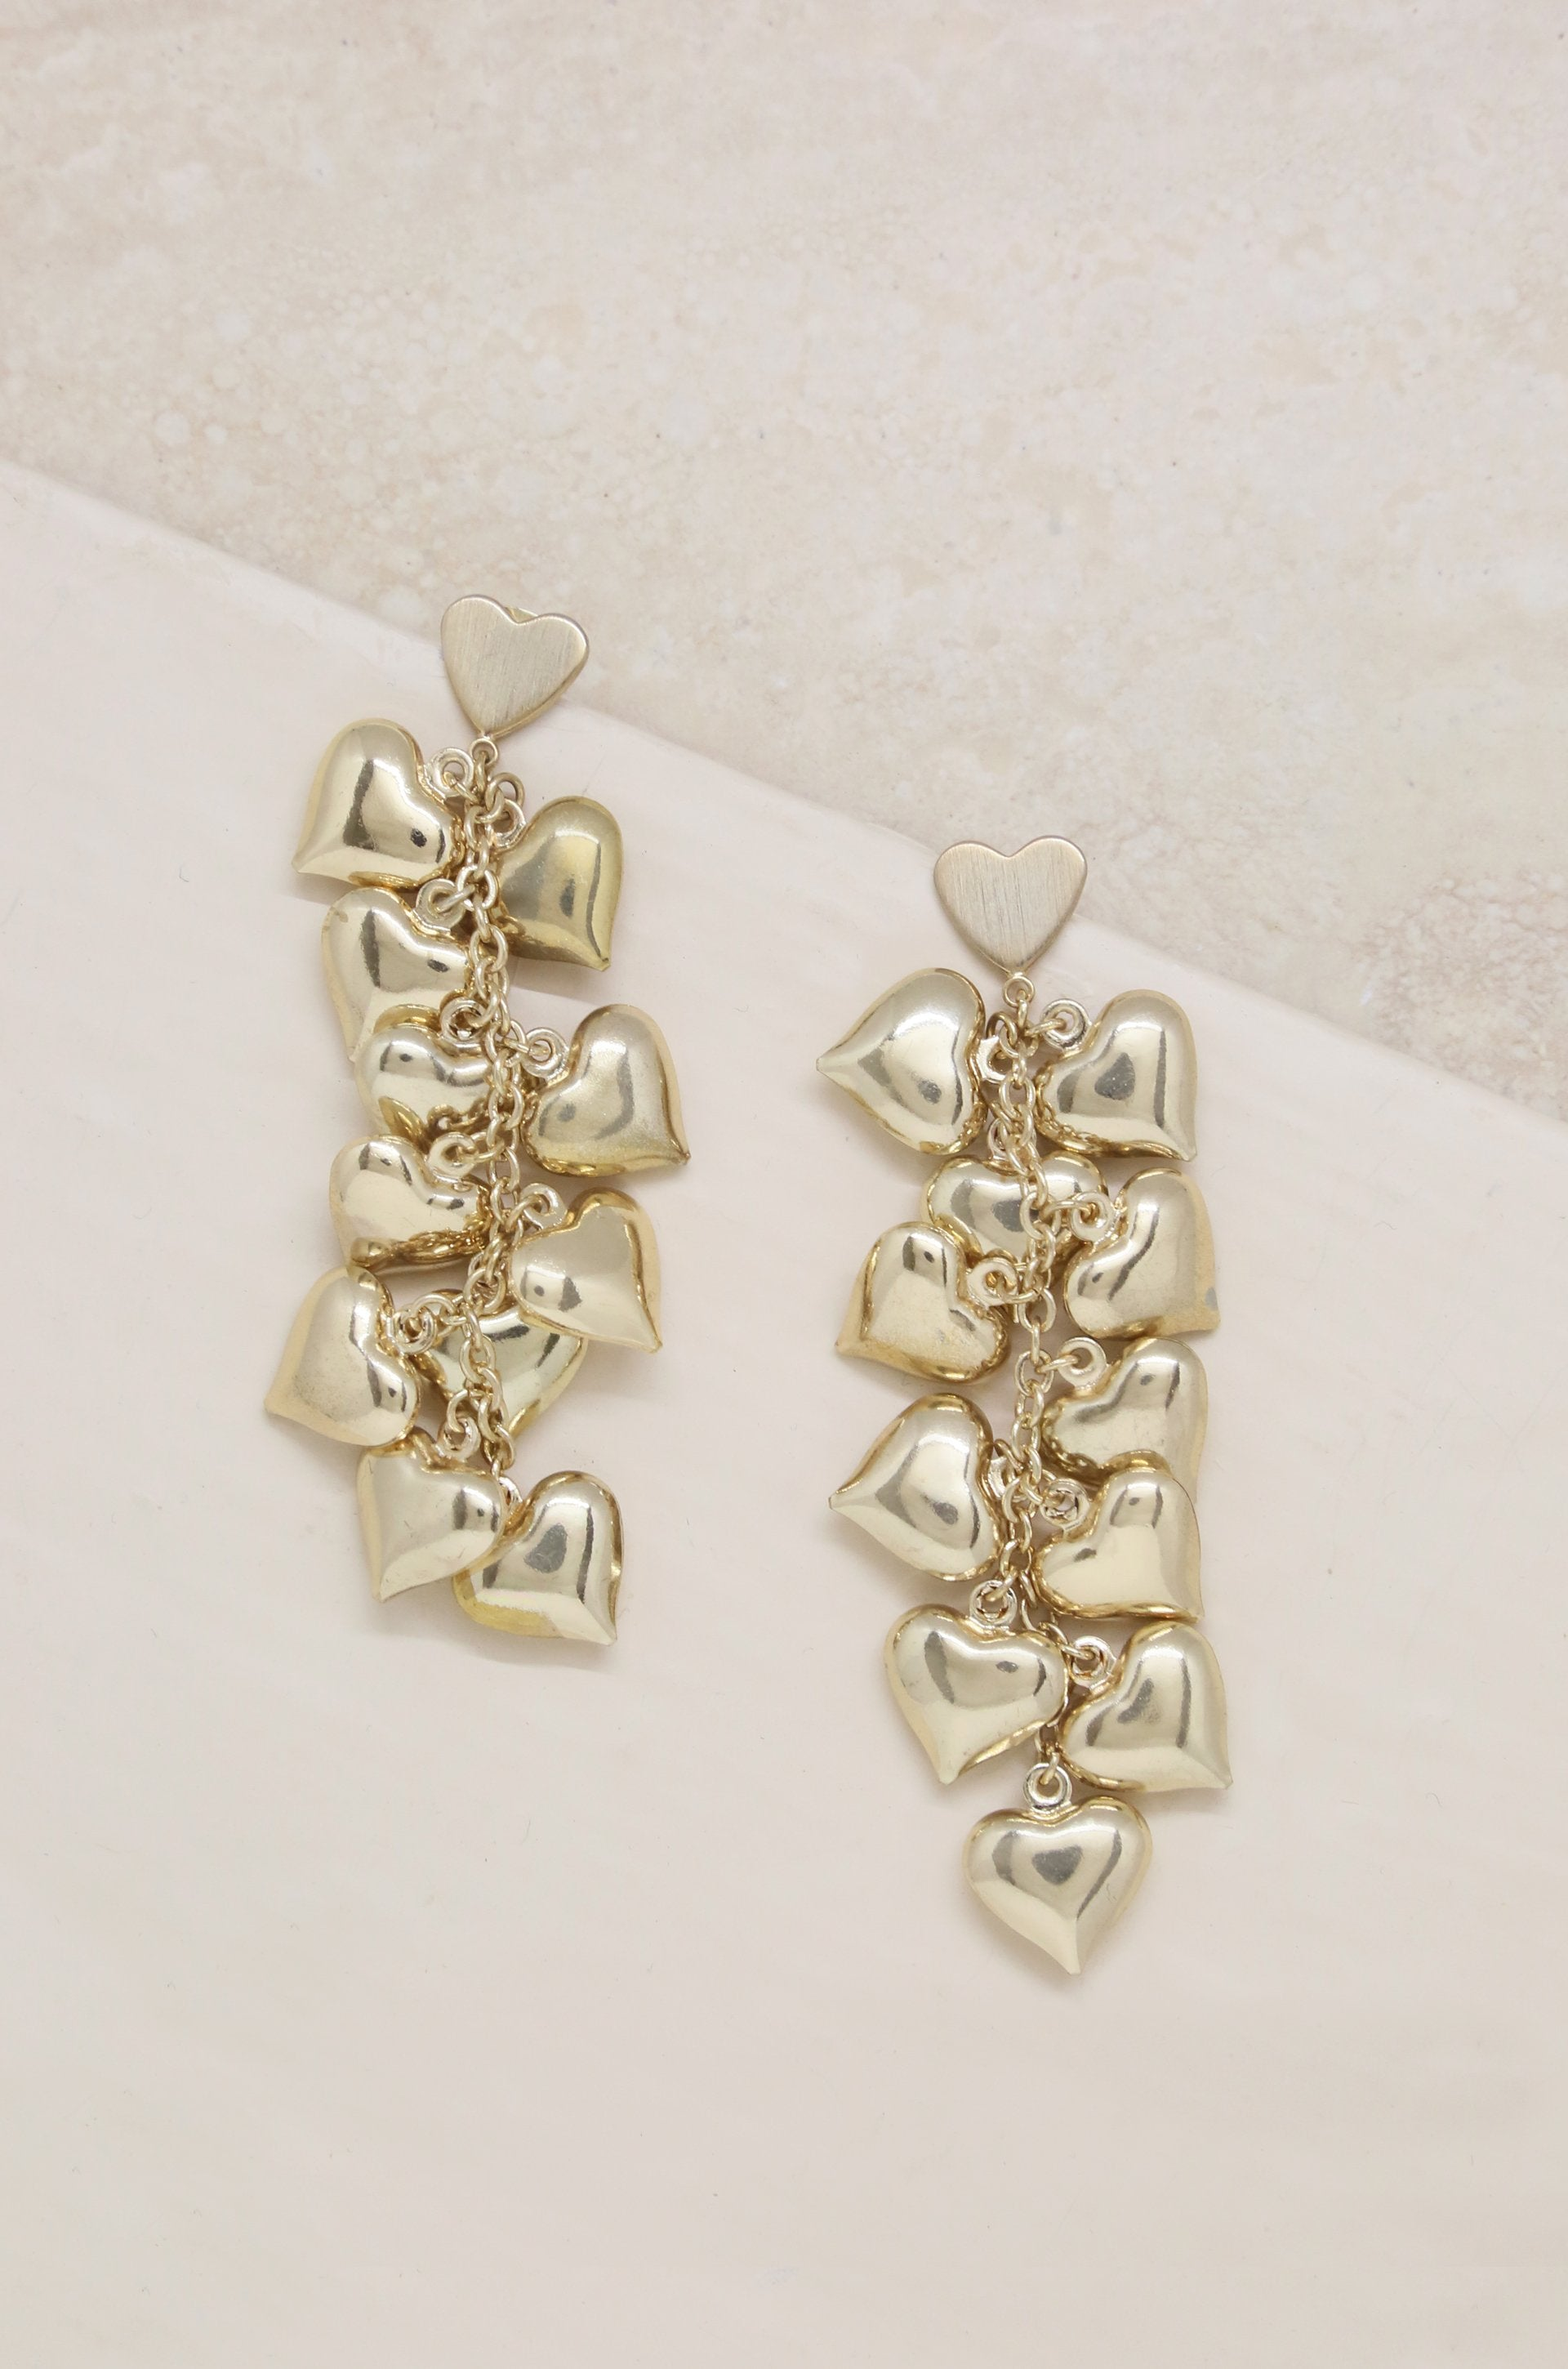 Earrings Heart Cluster 18k Gold Plated Drop Jewelry